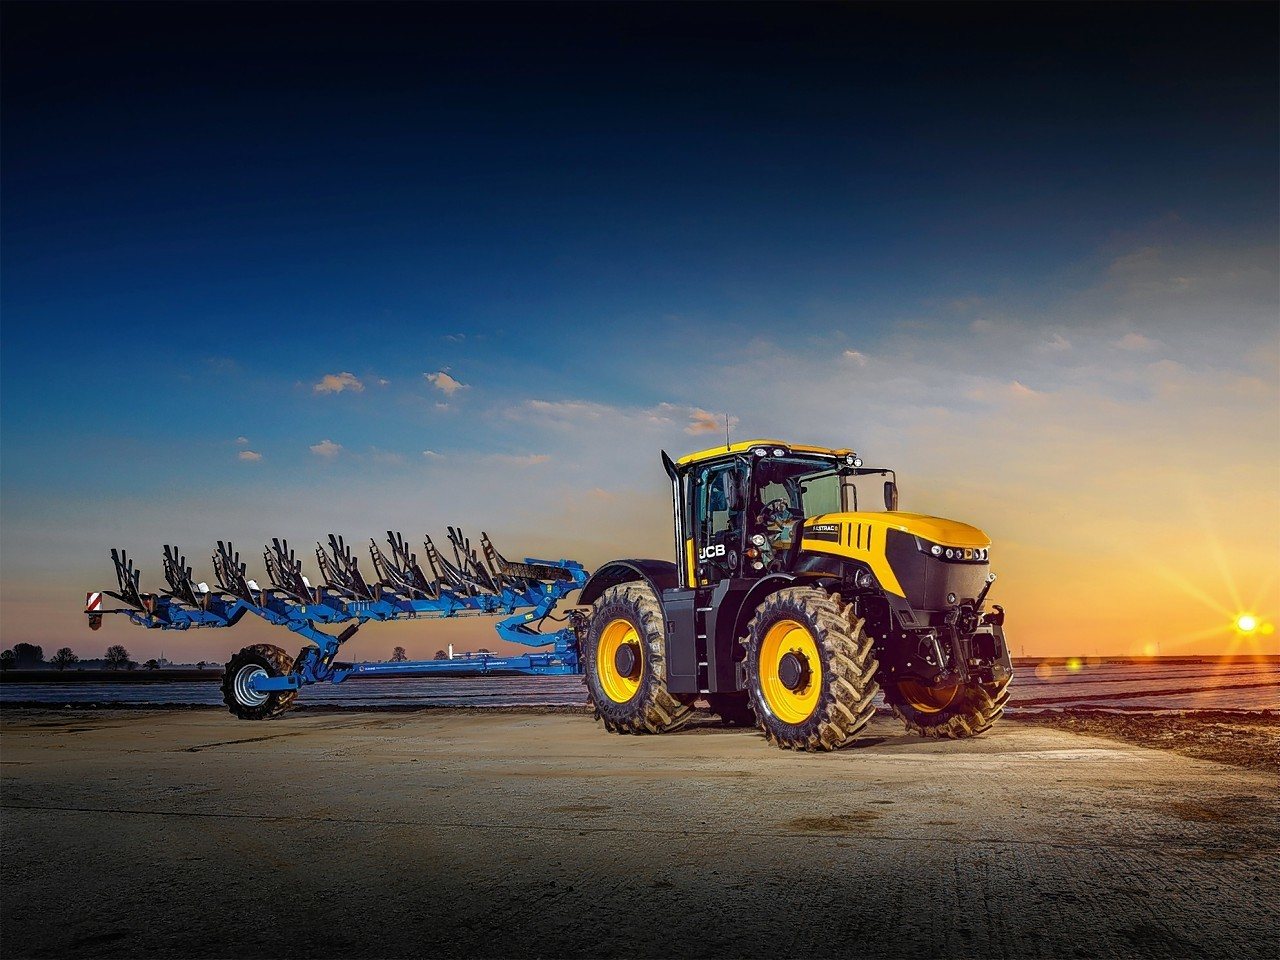 The new JCB Fastrac 8330